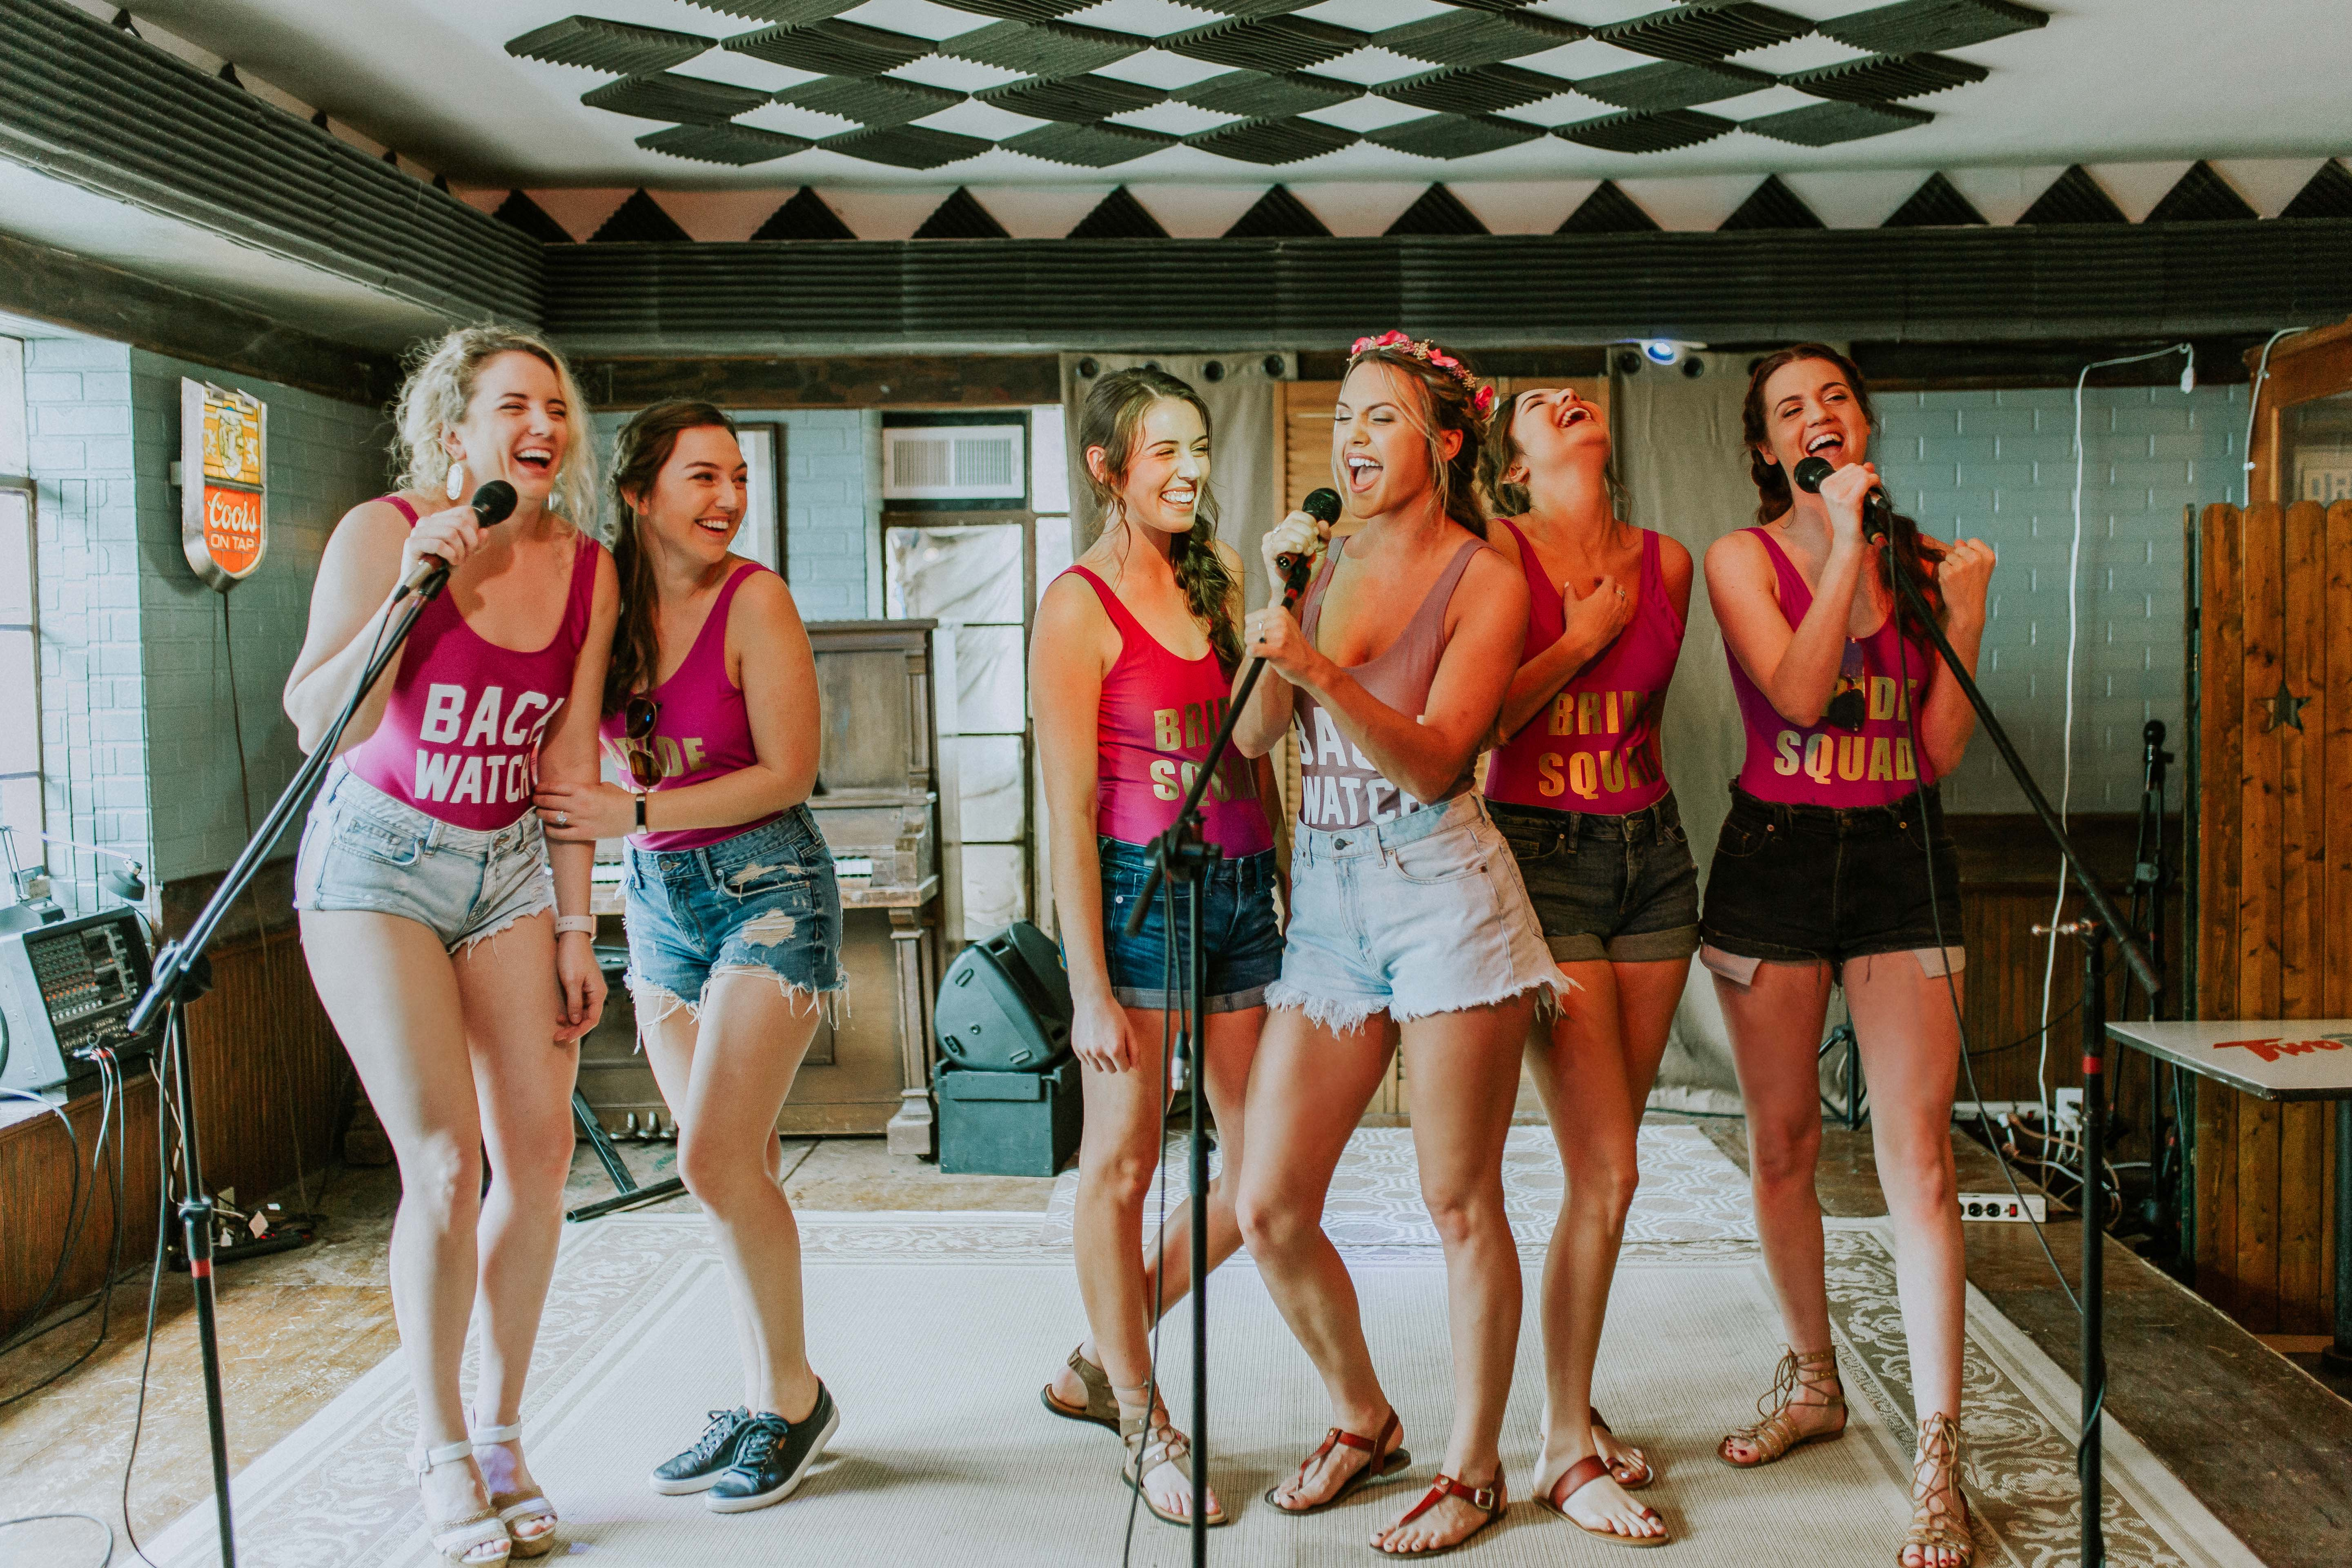 Can I Dictate a Dress Code for My Bachelorette Party?